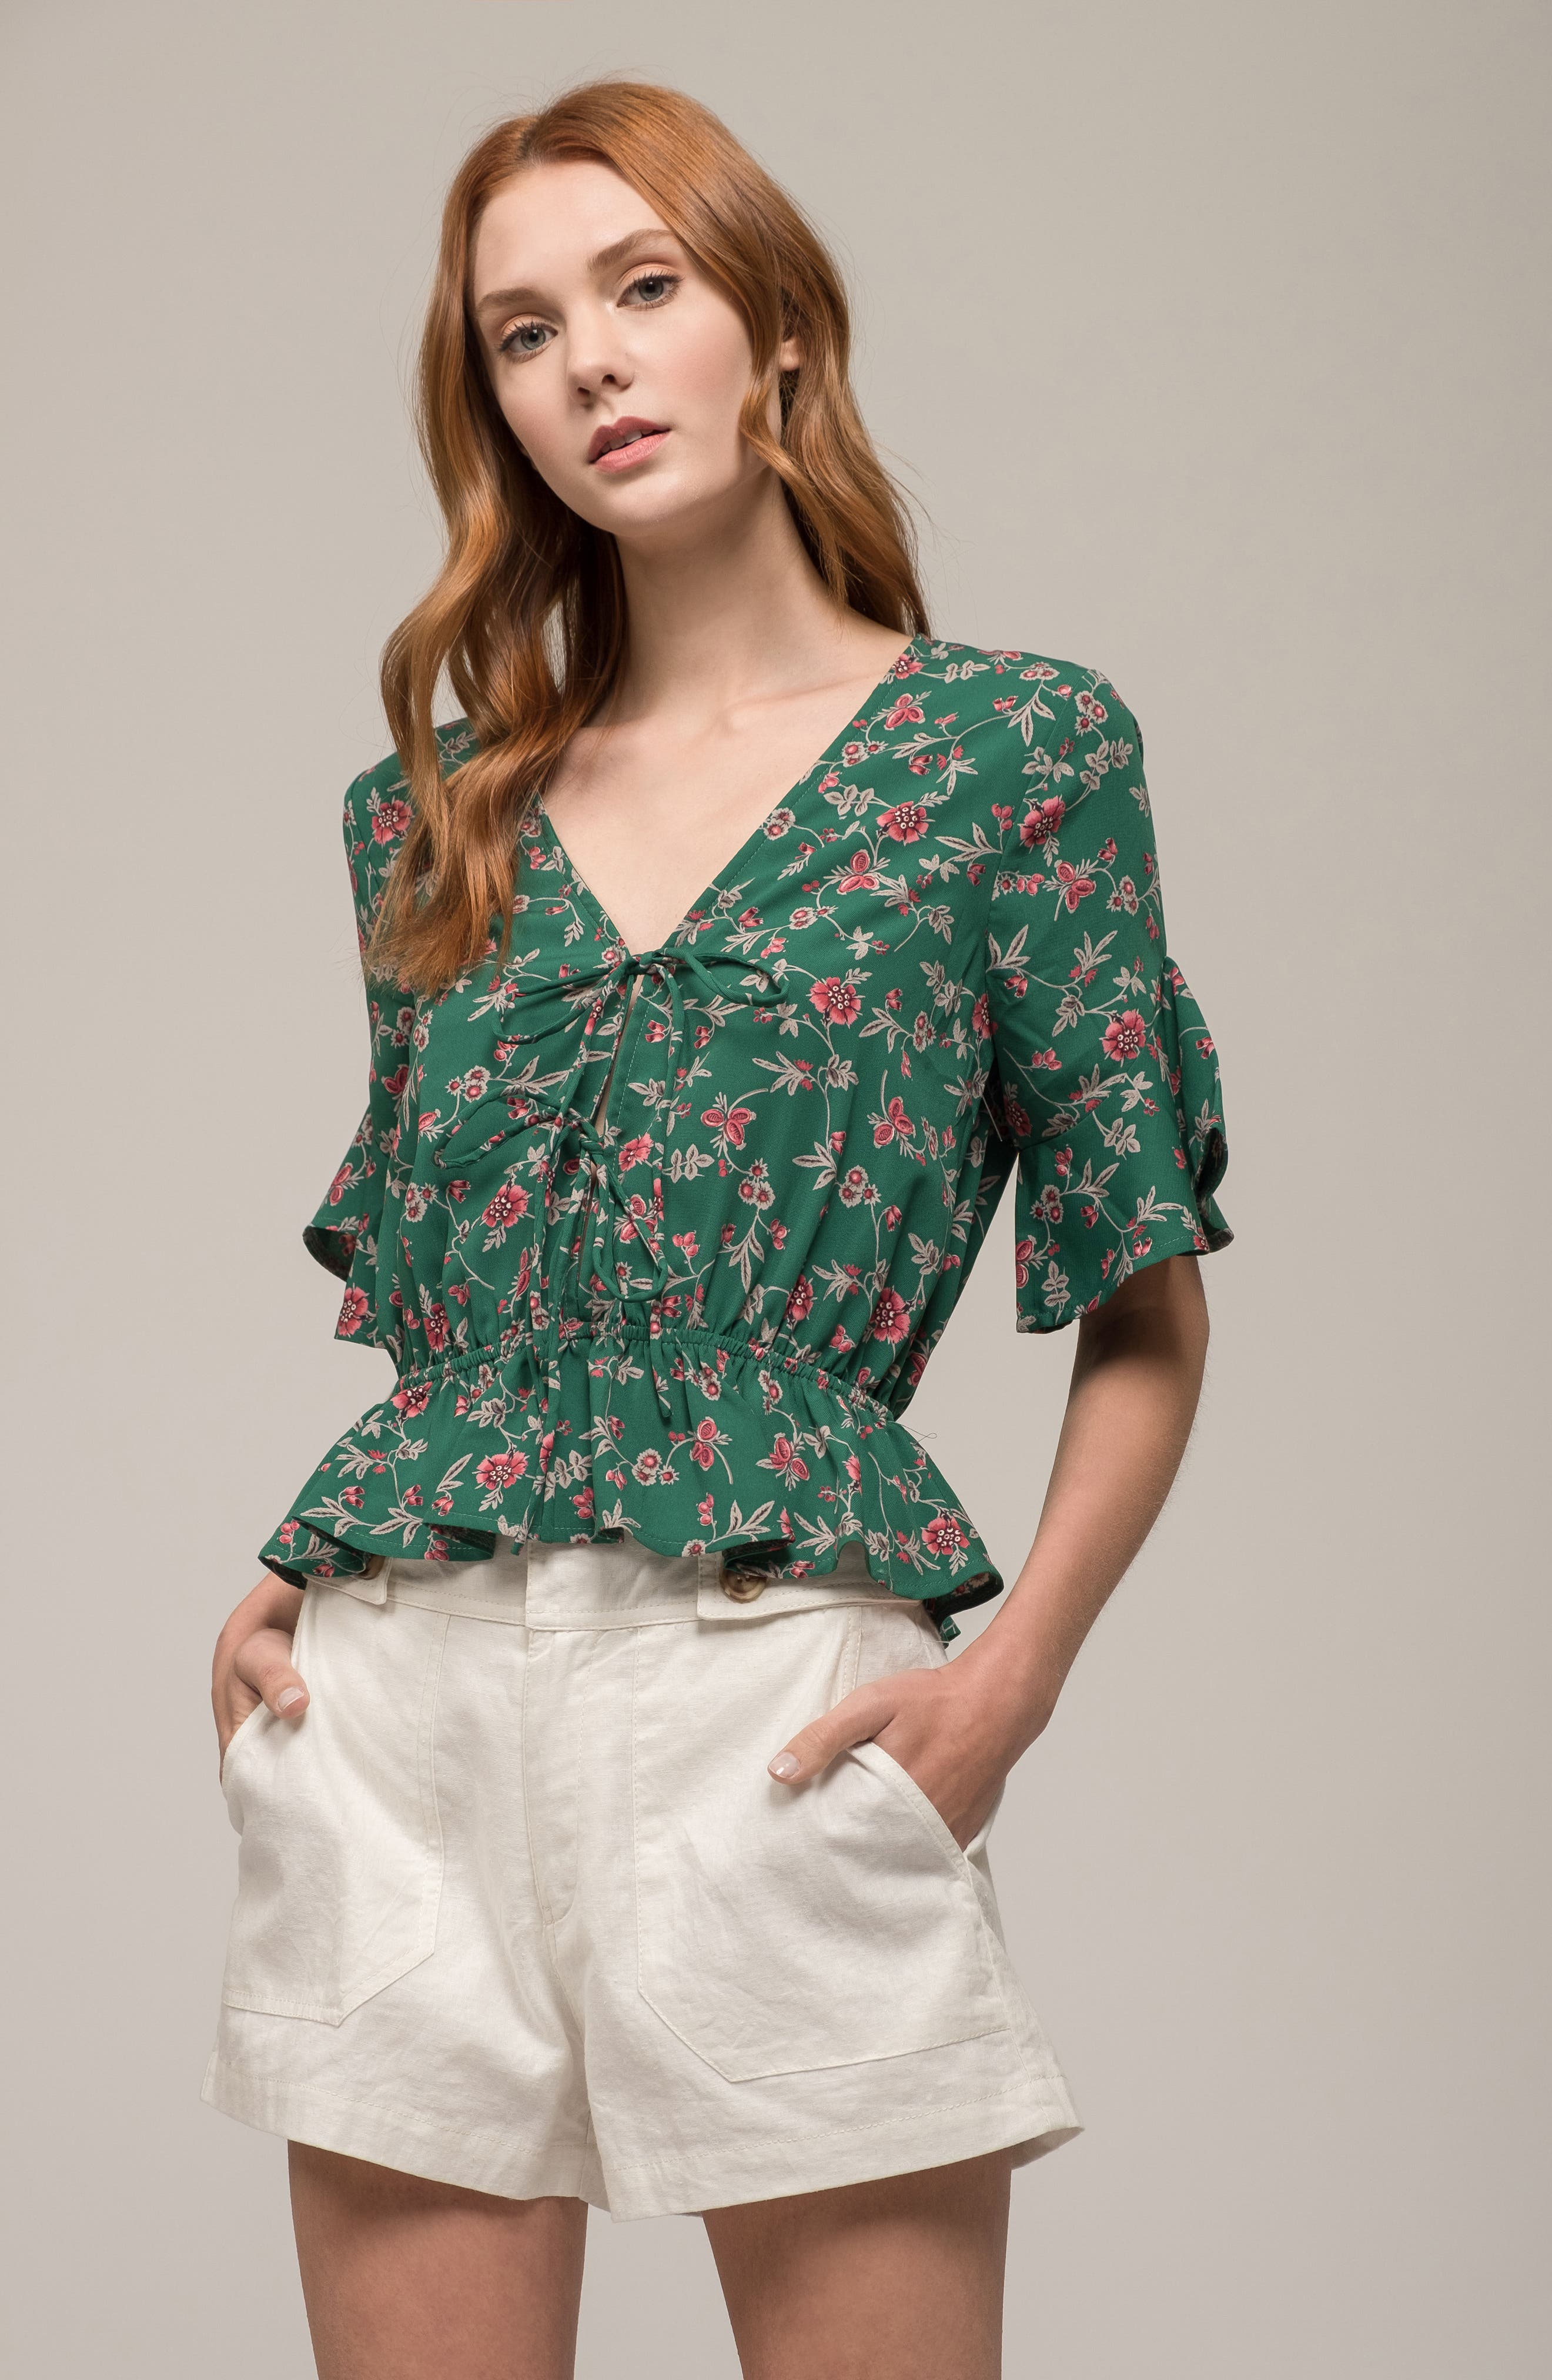 Floral Tie Front Peplum Top,                             Alternate thumbnail 2, color,                             Green/ Pink Floral